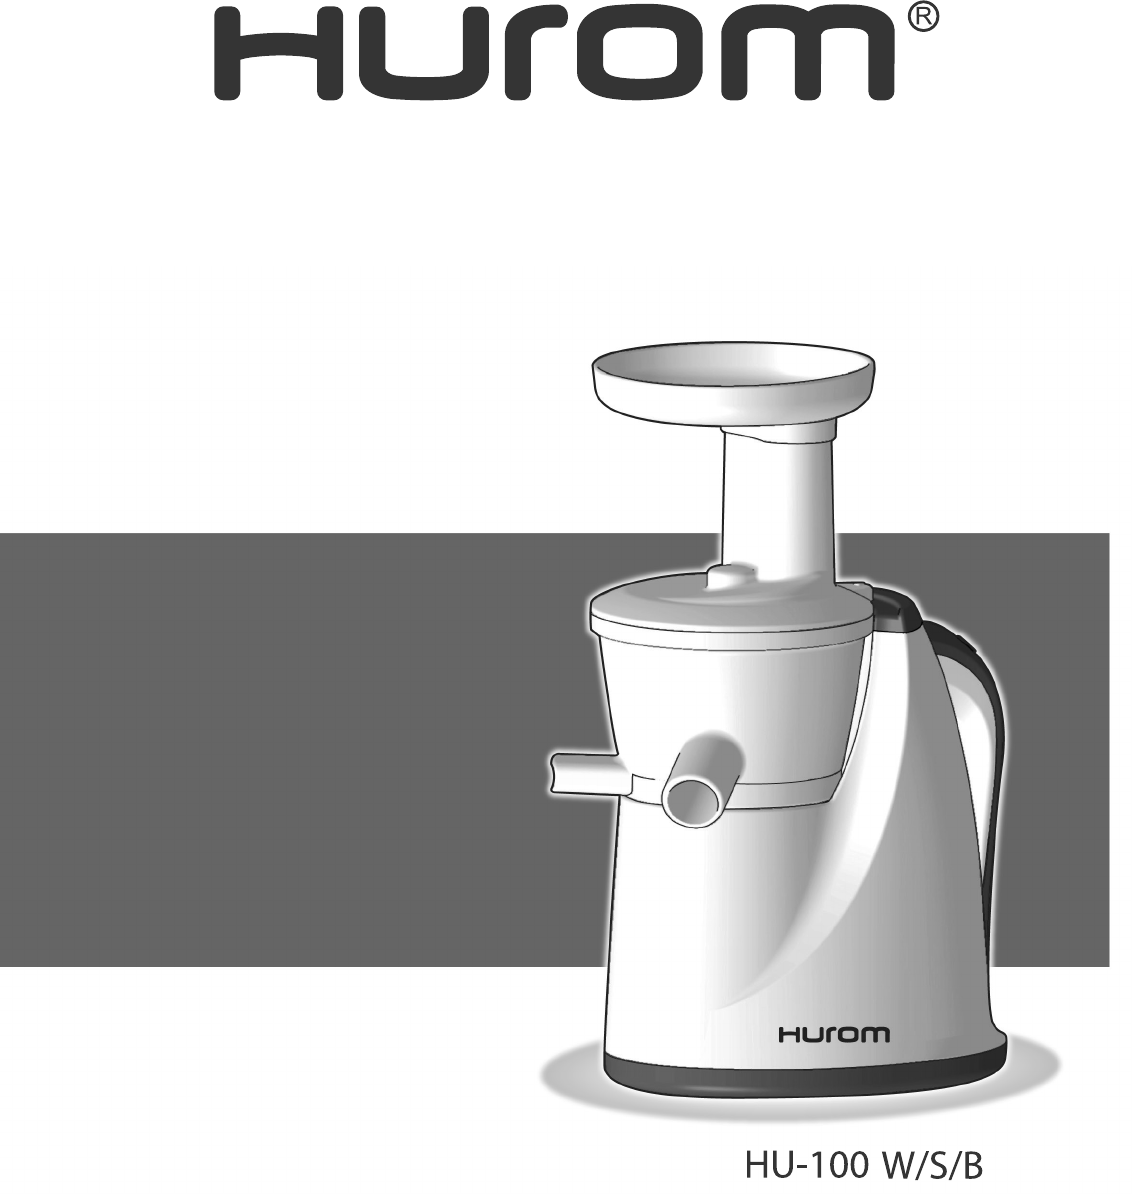 Hurom Slow Juicer English : Handleiding Hurom Hurom Slow juicer HU-100 S (pagina 1 van 44) (English, Espan?l, Francais)